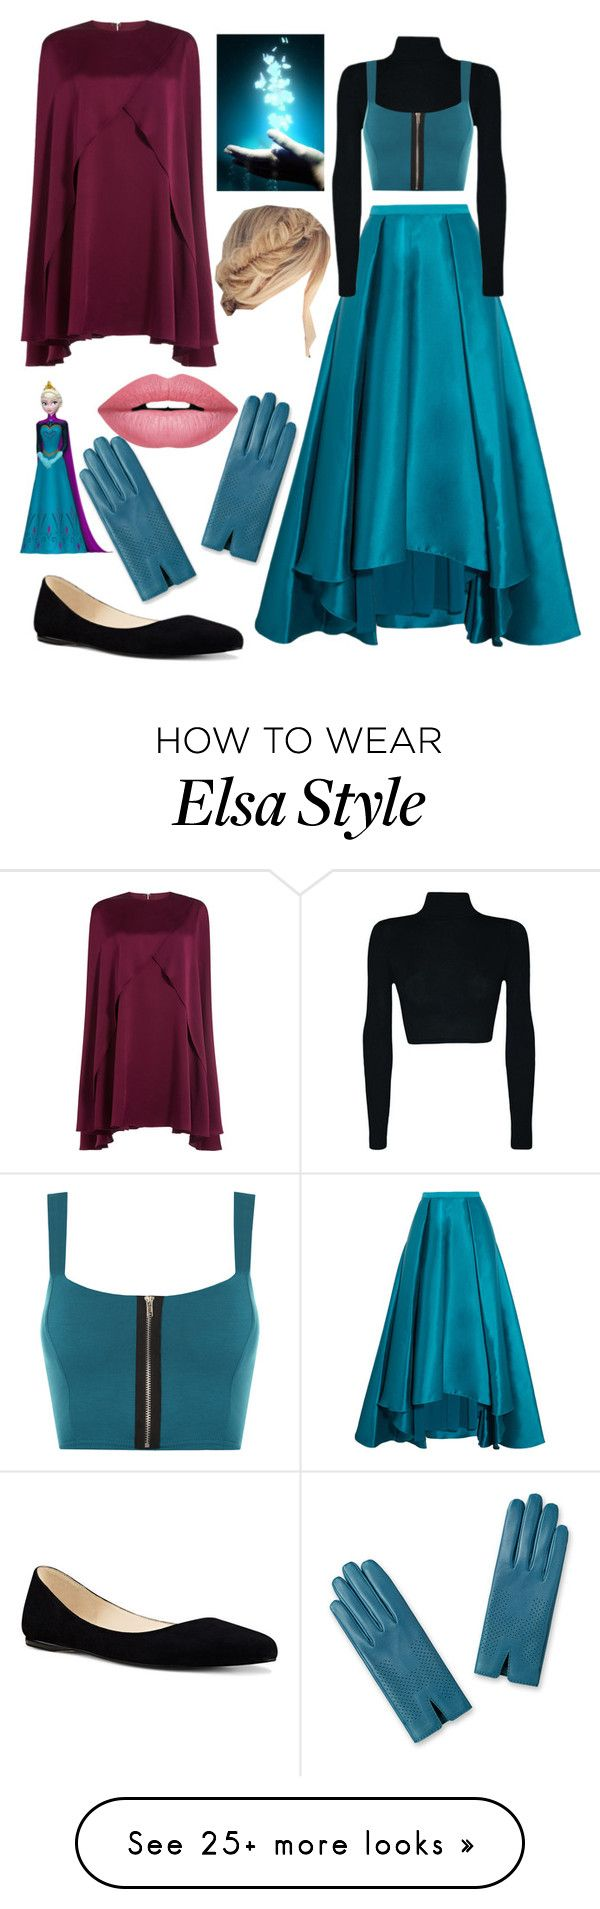 """Elsa"" by nanixmc on Polyvore featuring Badgley Mischka, WearAll, Nine West, Forever 21, Sonia Rykiel and Disney"